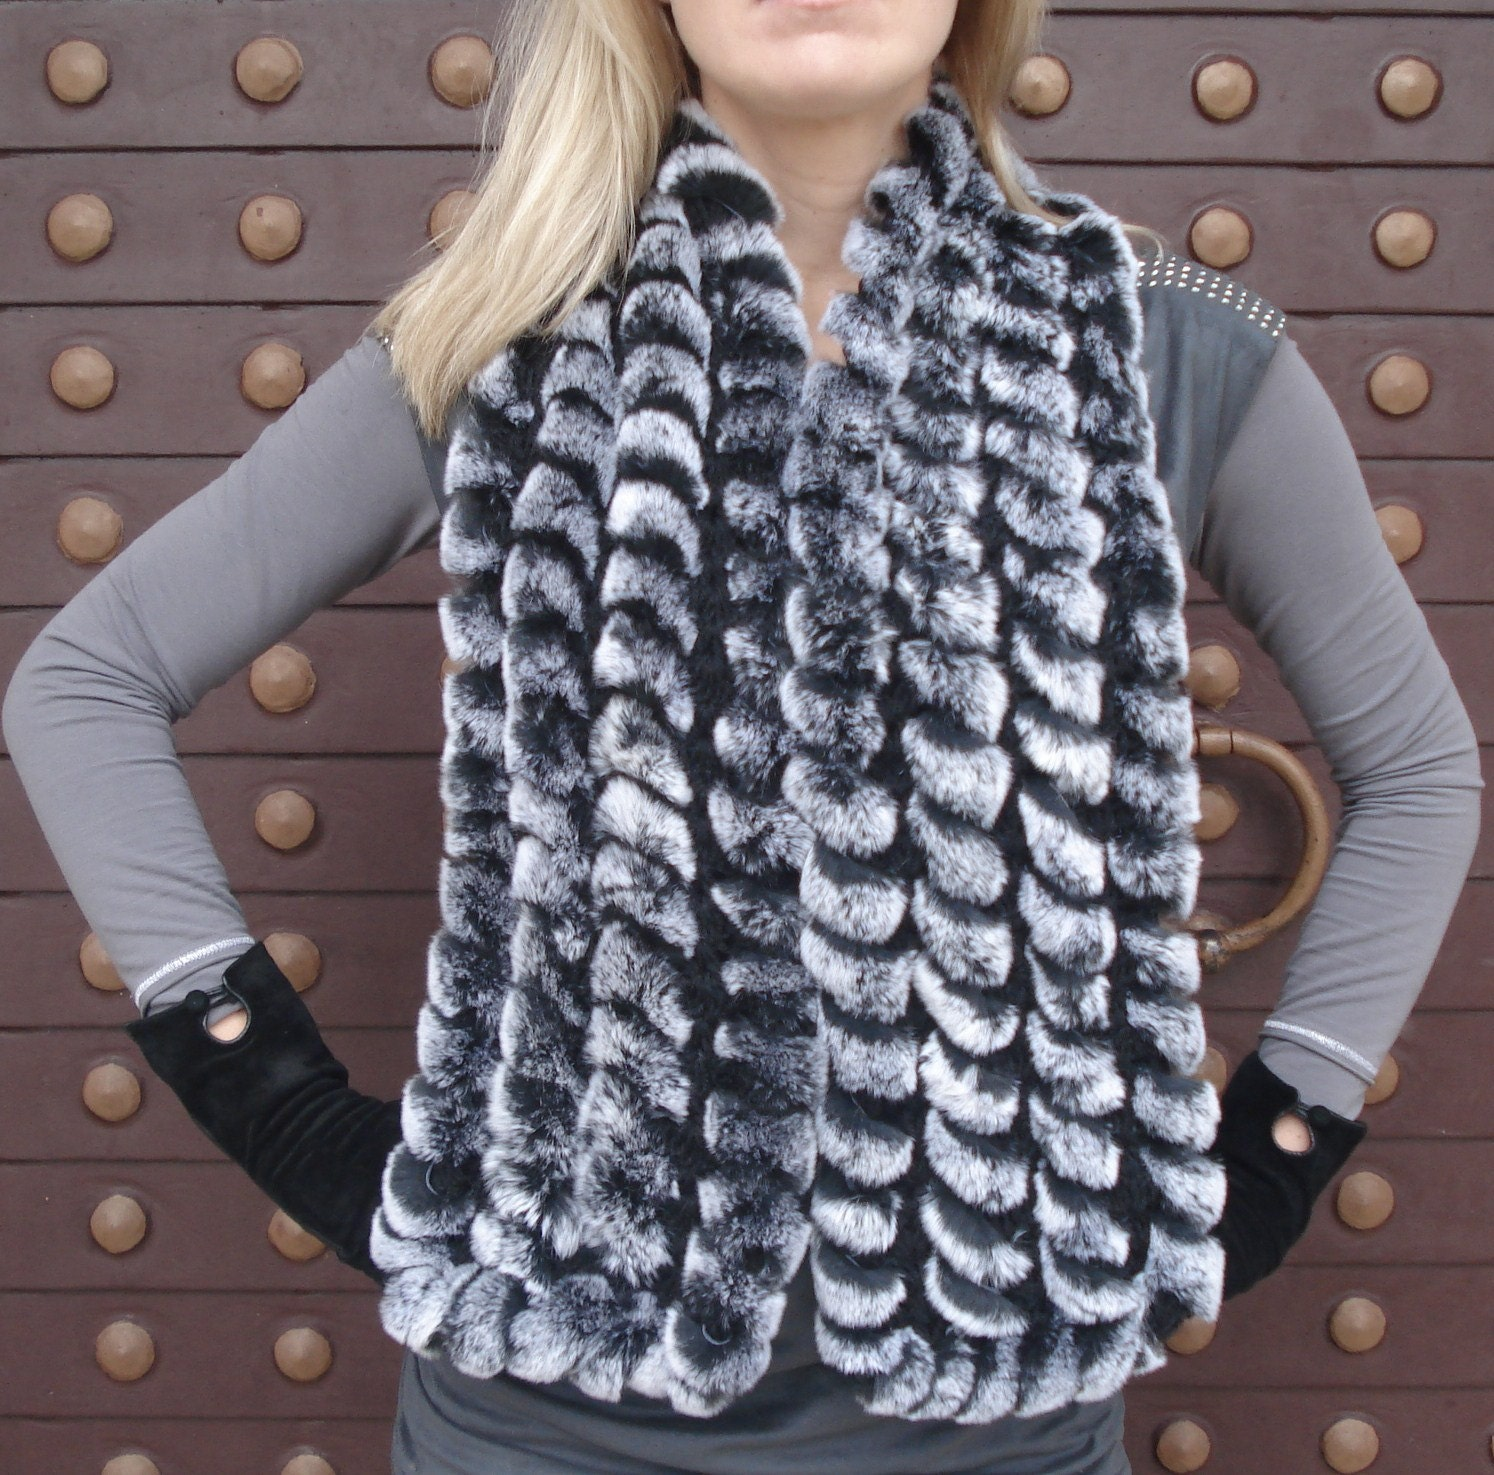 Knitting pattern to make a Scarf from Fun Fur yarn